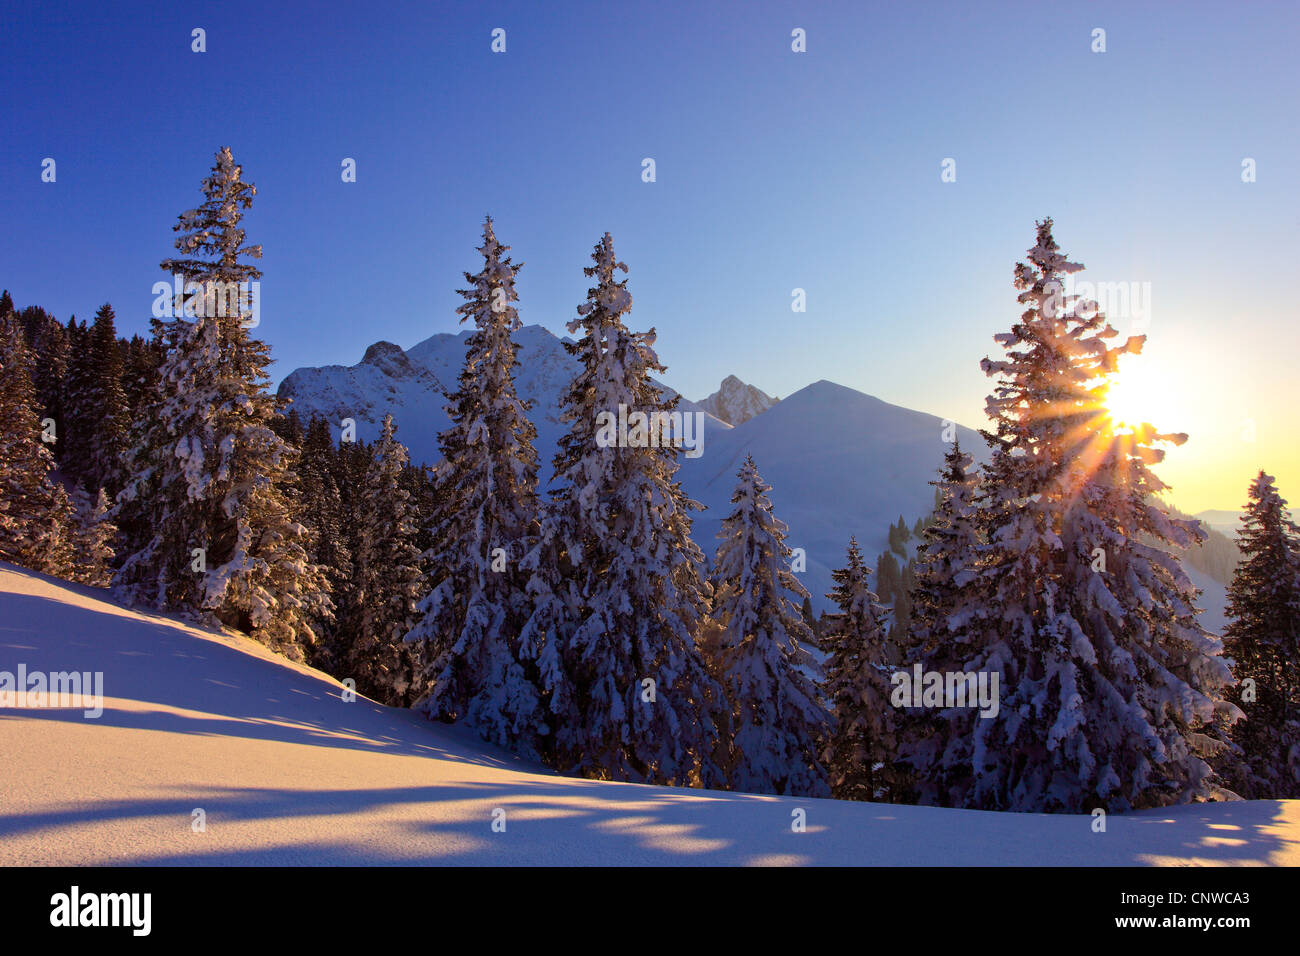 snow-covered conifer forest in the sunset with mountain range in the background, Switzerland, Gurnigel - Stock Image